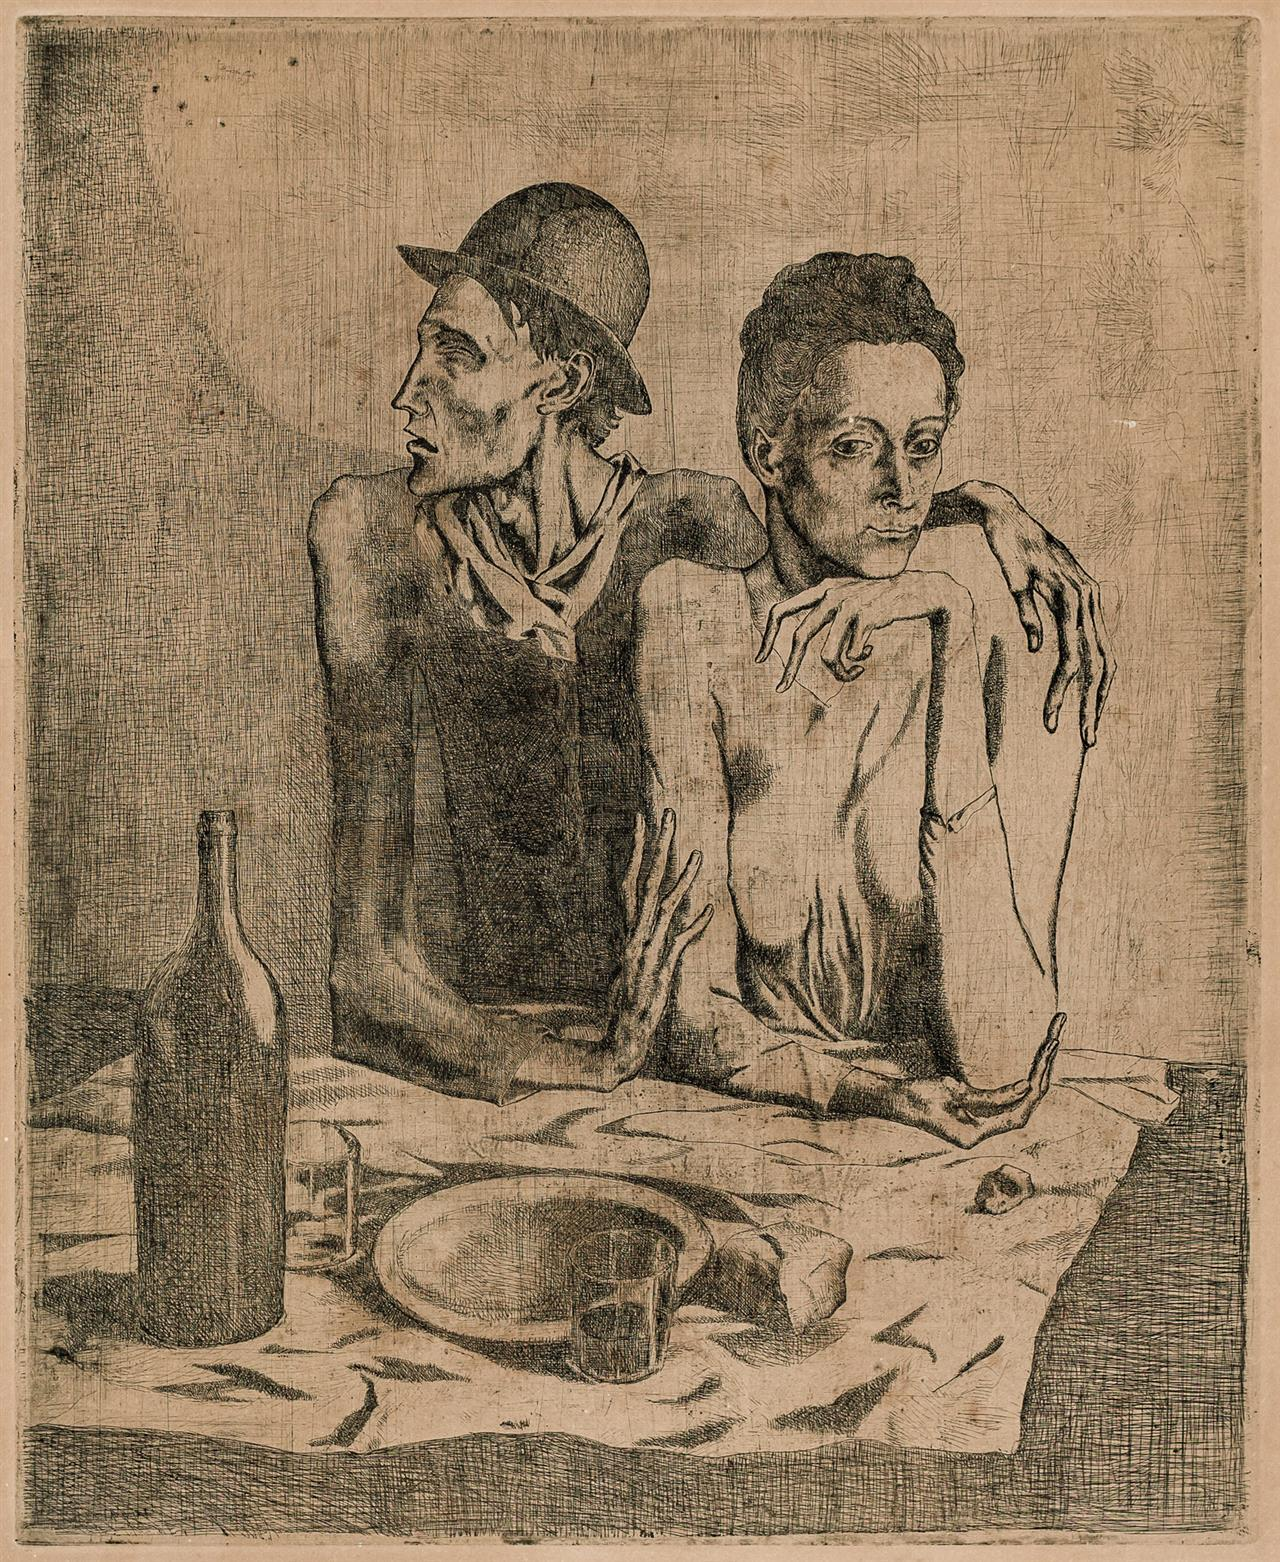 """PABLO PICASSO, Spanish (1881-1973), """"Le Repas Frugal,"""" 1904 from """"La Suite des Saltimbanques"""", etching with drypoint on Van Gelder Z..."""